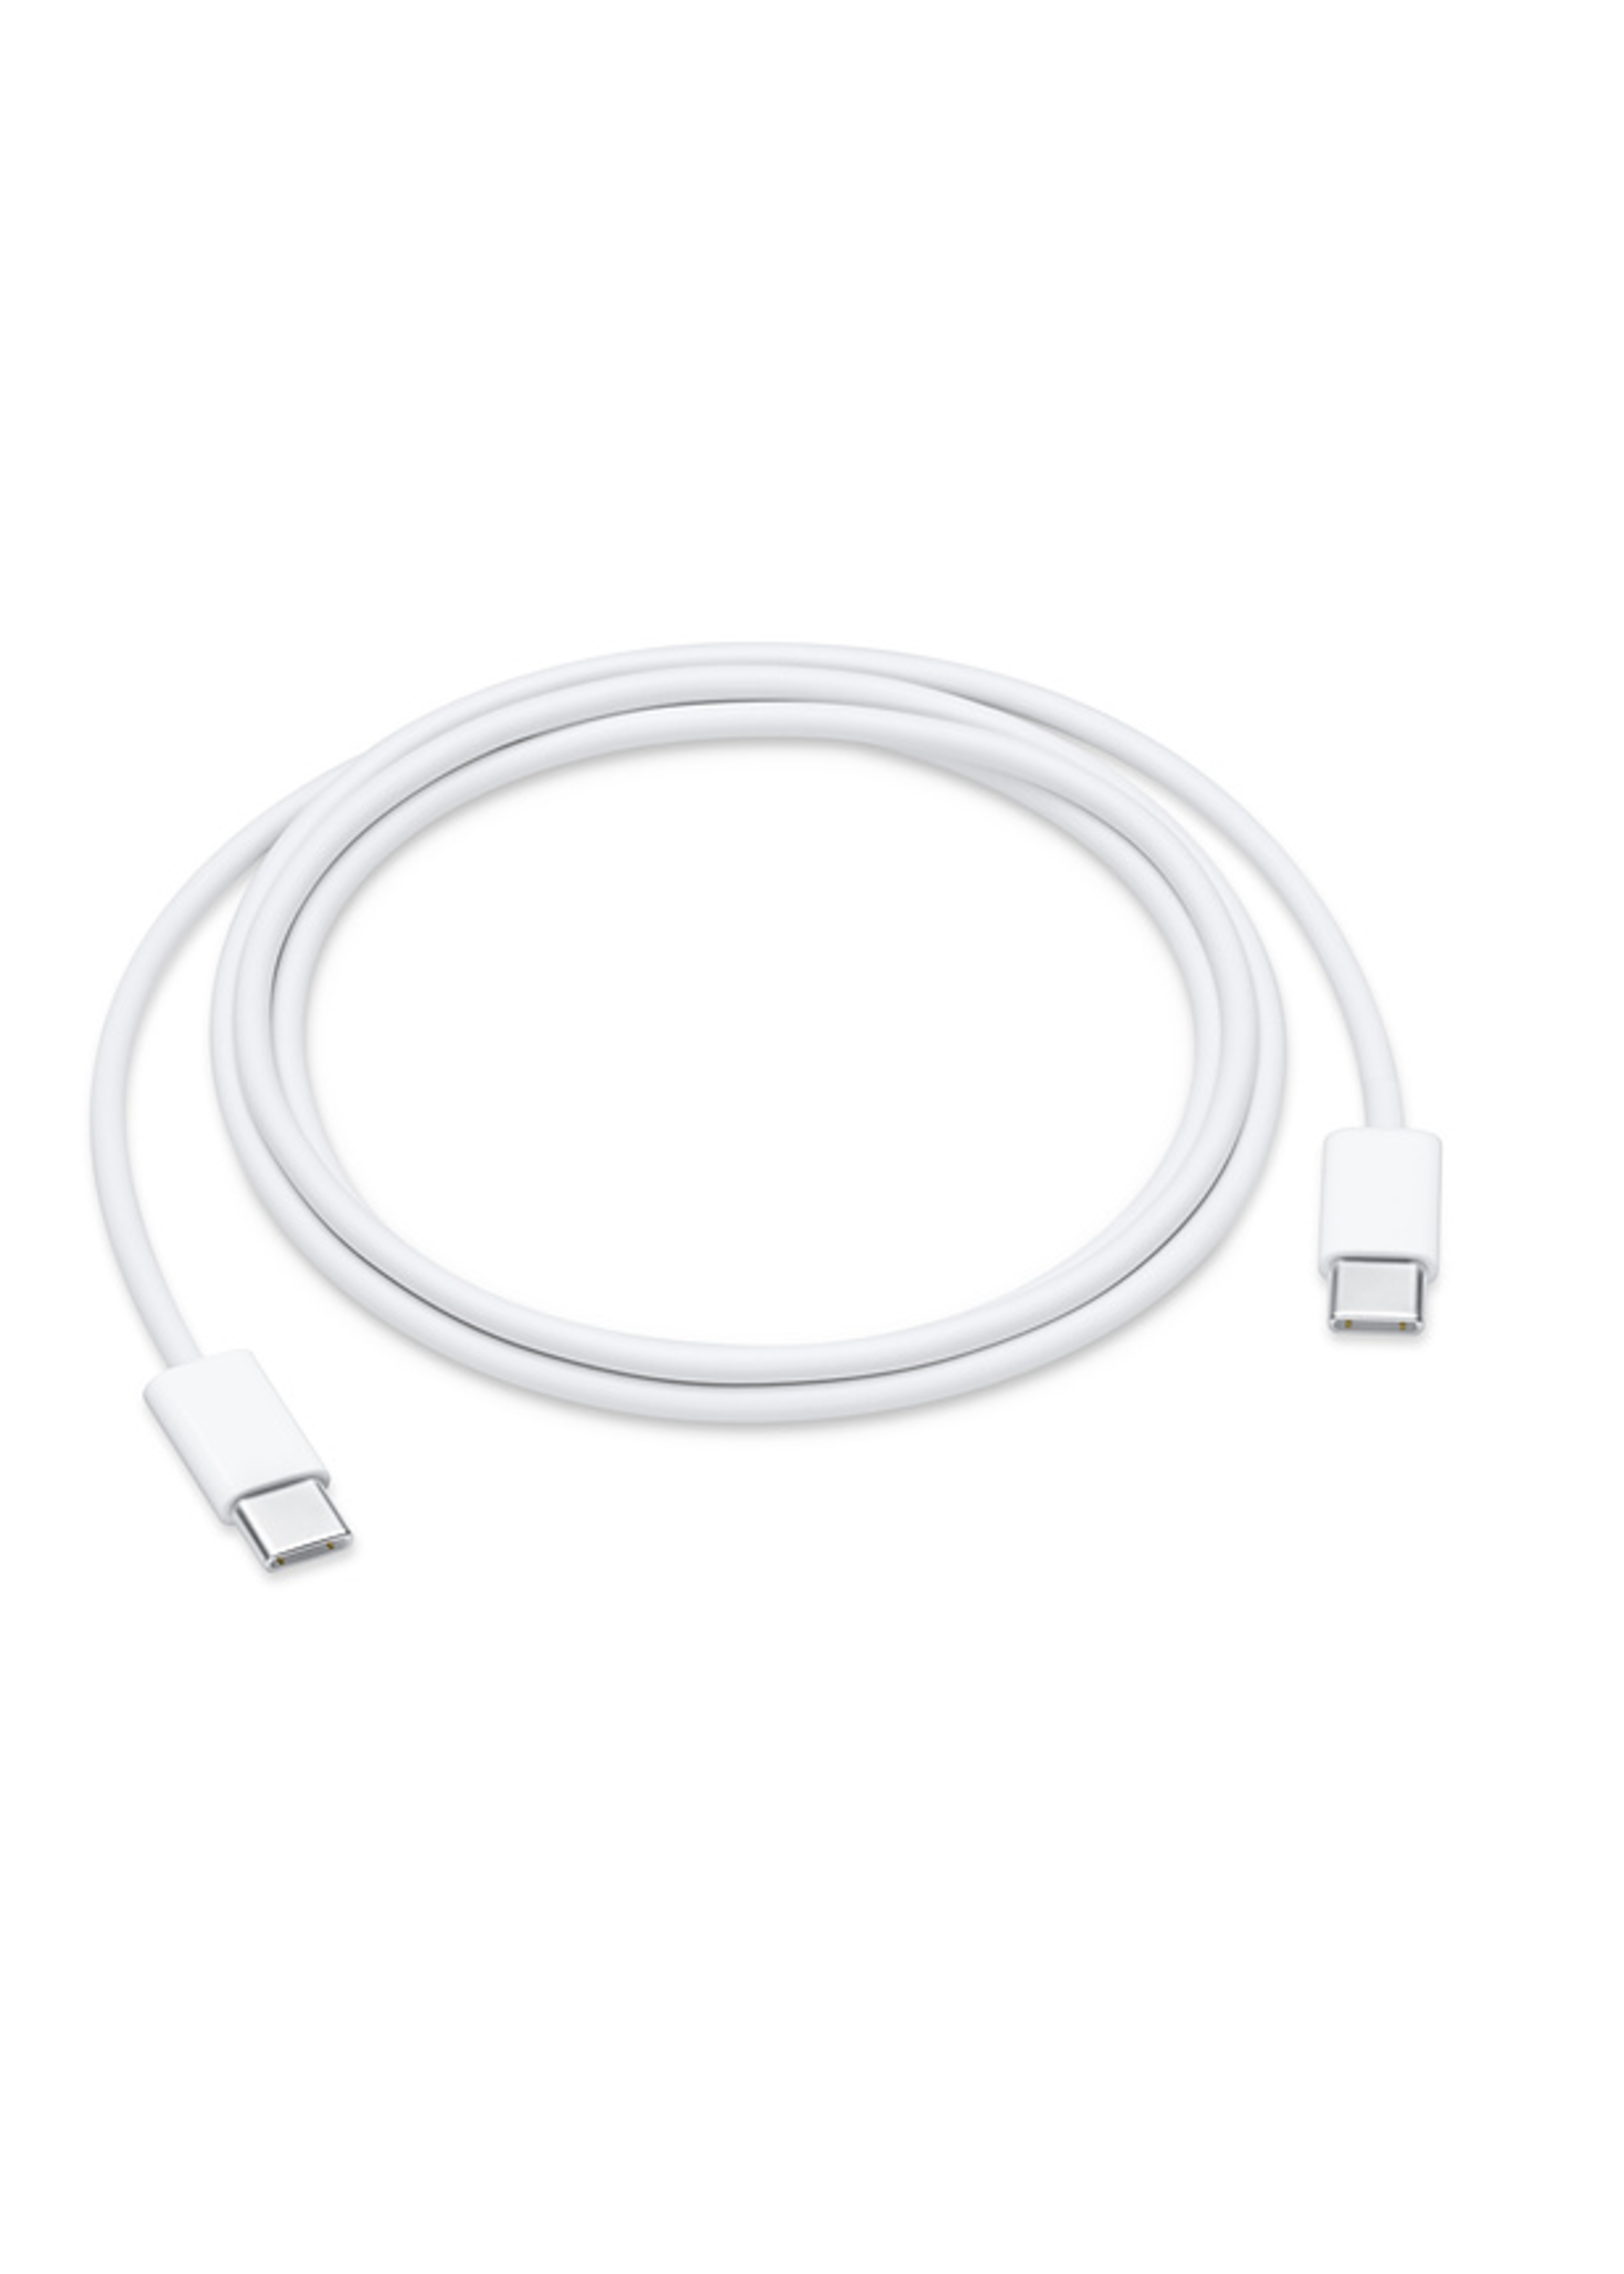 Apple USB-C Charge Cable (1m) - OLD